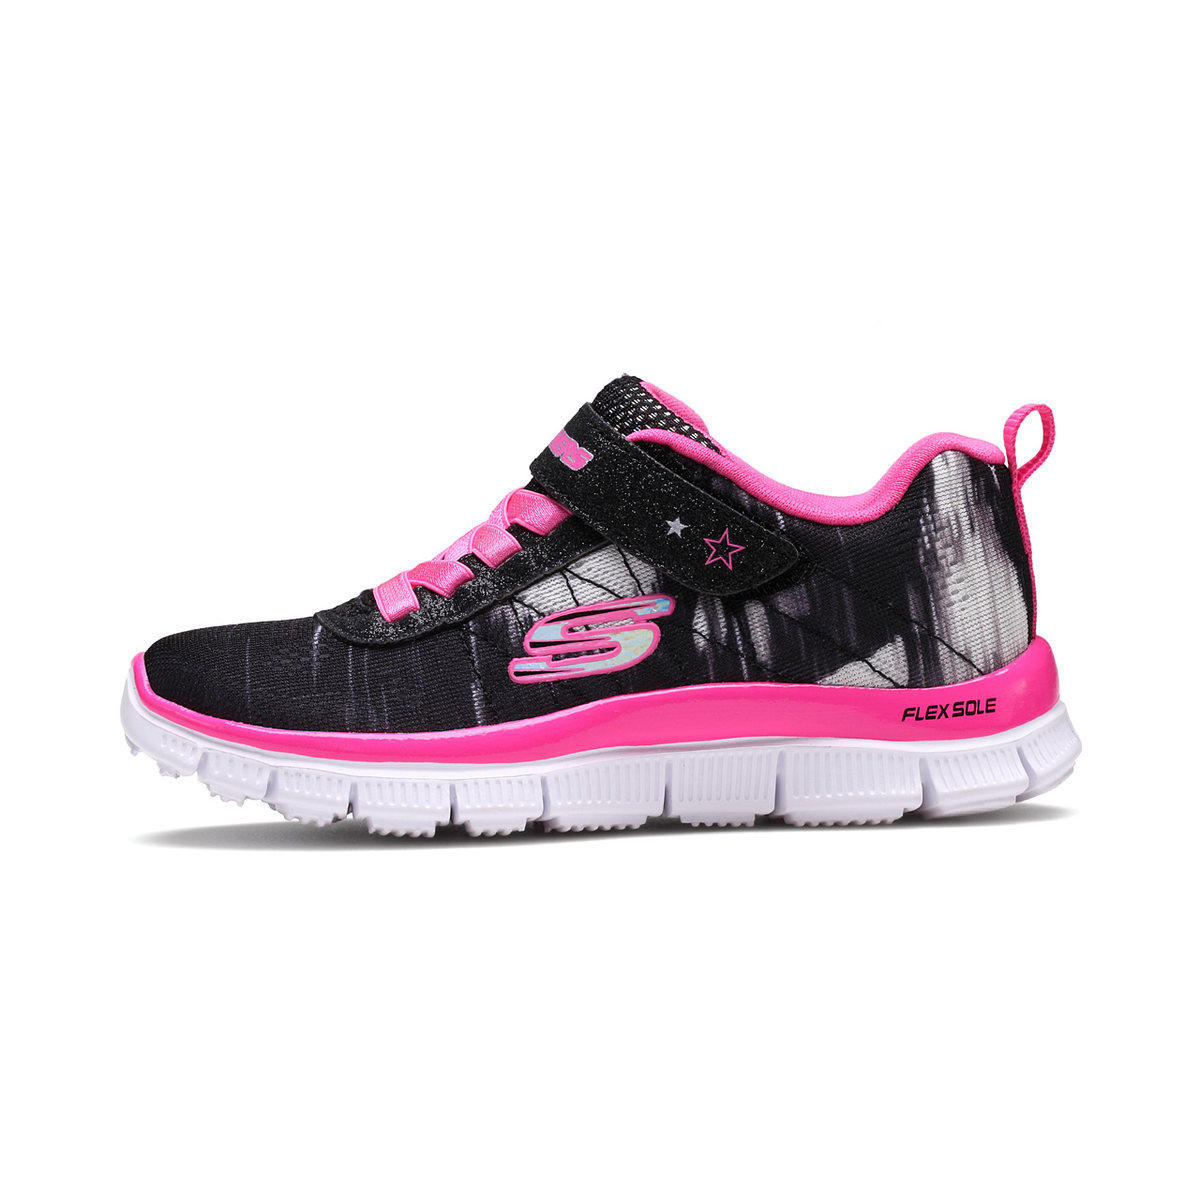 ... Skechers skechers girls shoes tide shoes big boy shoes breathable  sneakers new running shoes slip